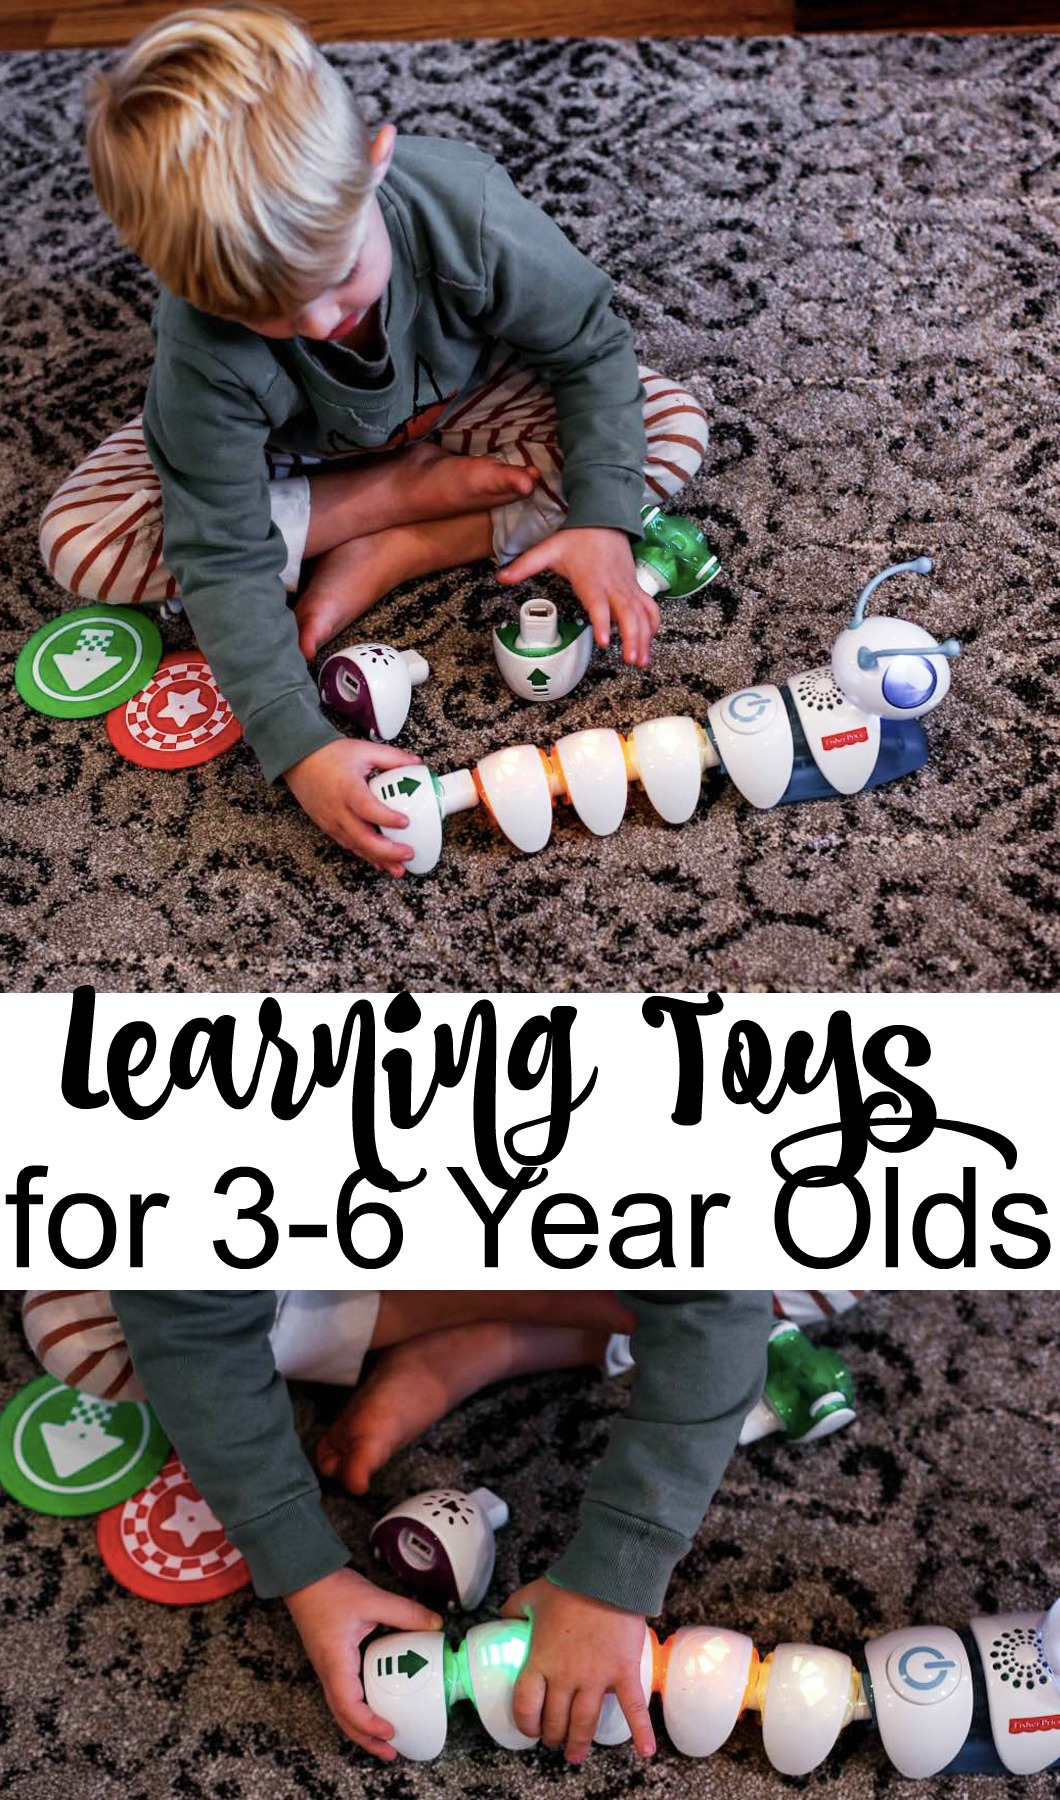 Learning Toys for 3-6 year olds